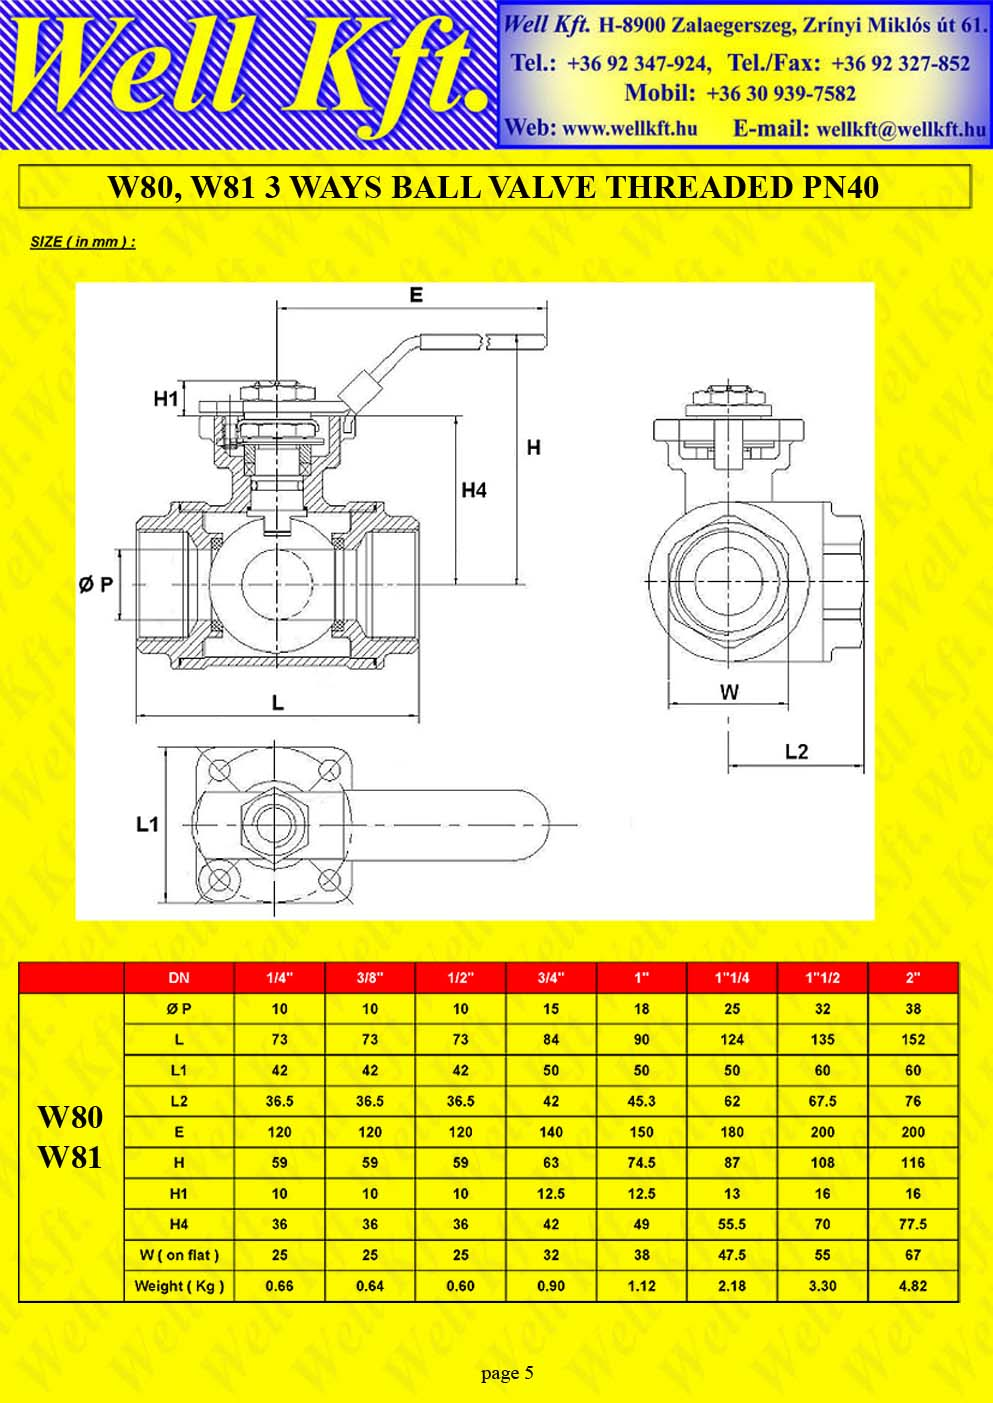 3 ways ball valve stainless steel threaded PN 40 (5.)